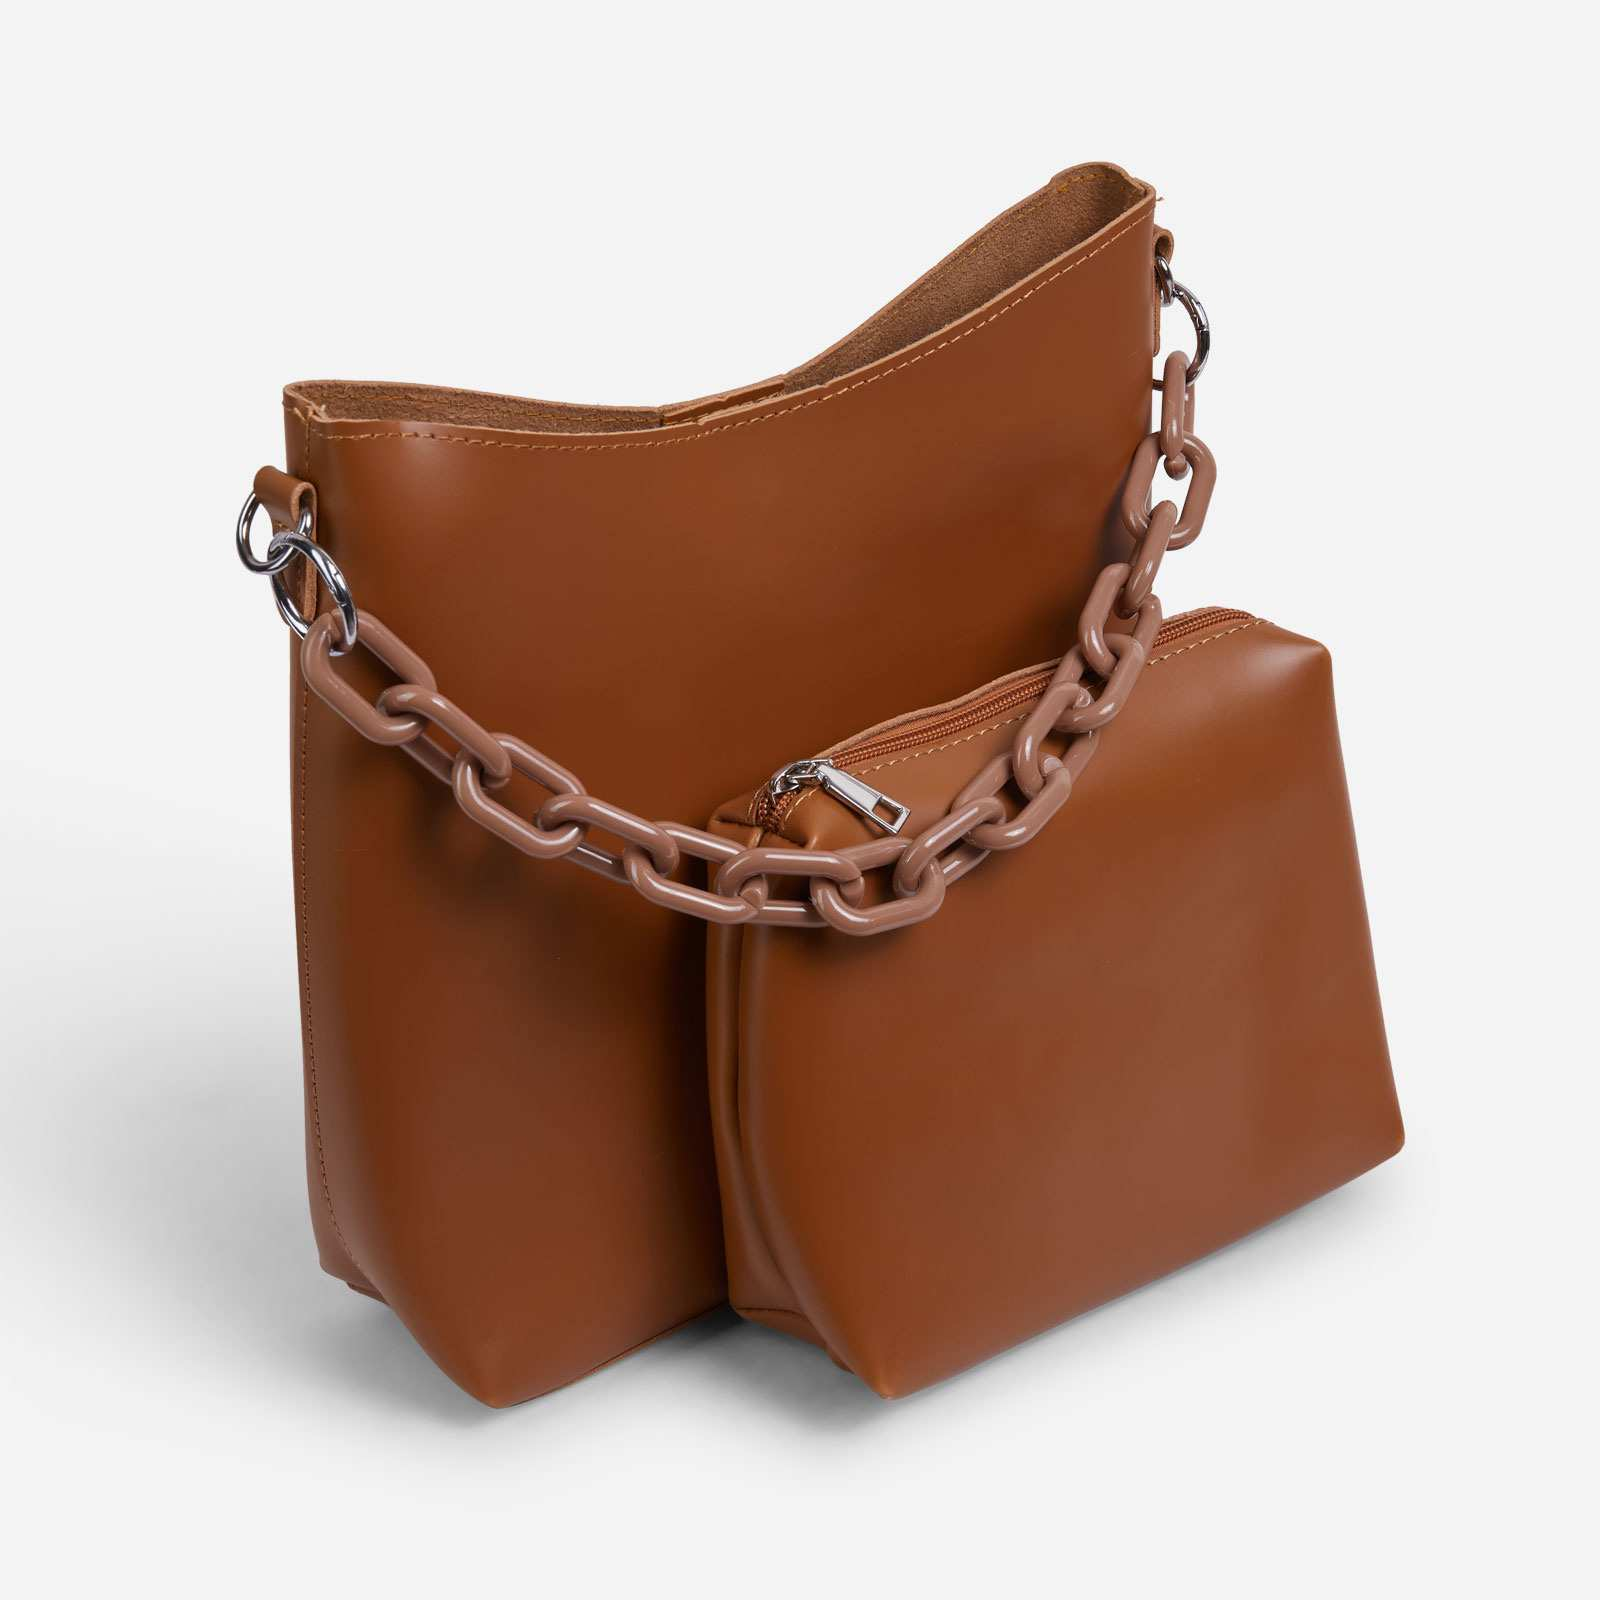 Bounty Chain Strap Oversized Shopper Bag In Tan Brown Faux Leather